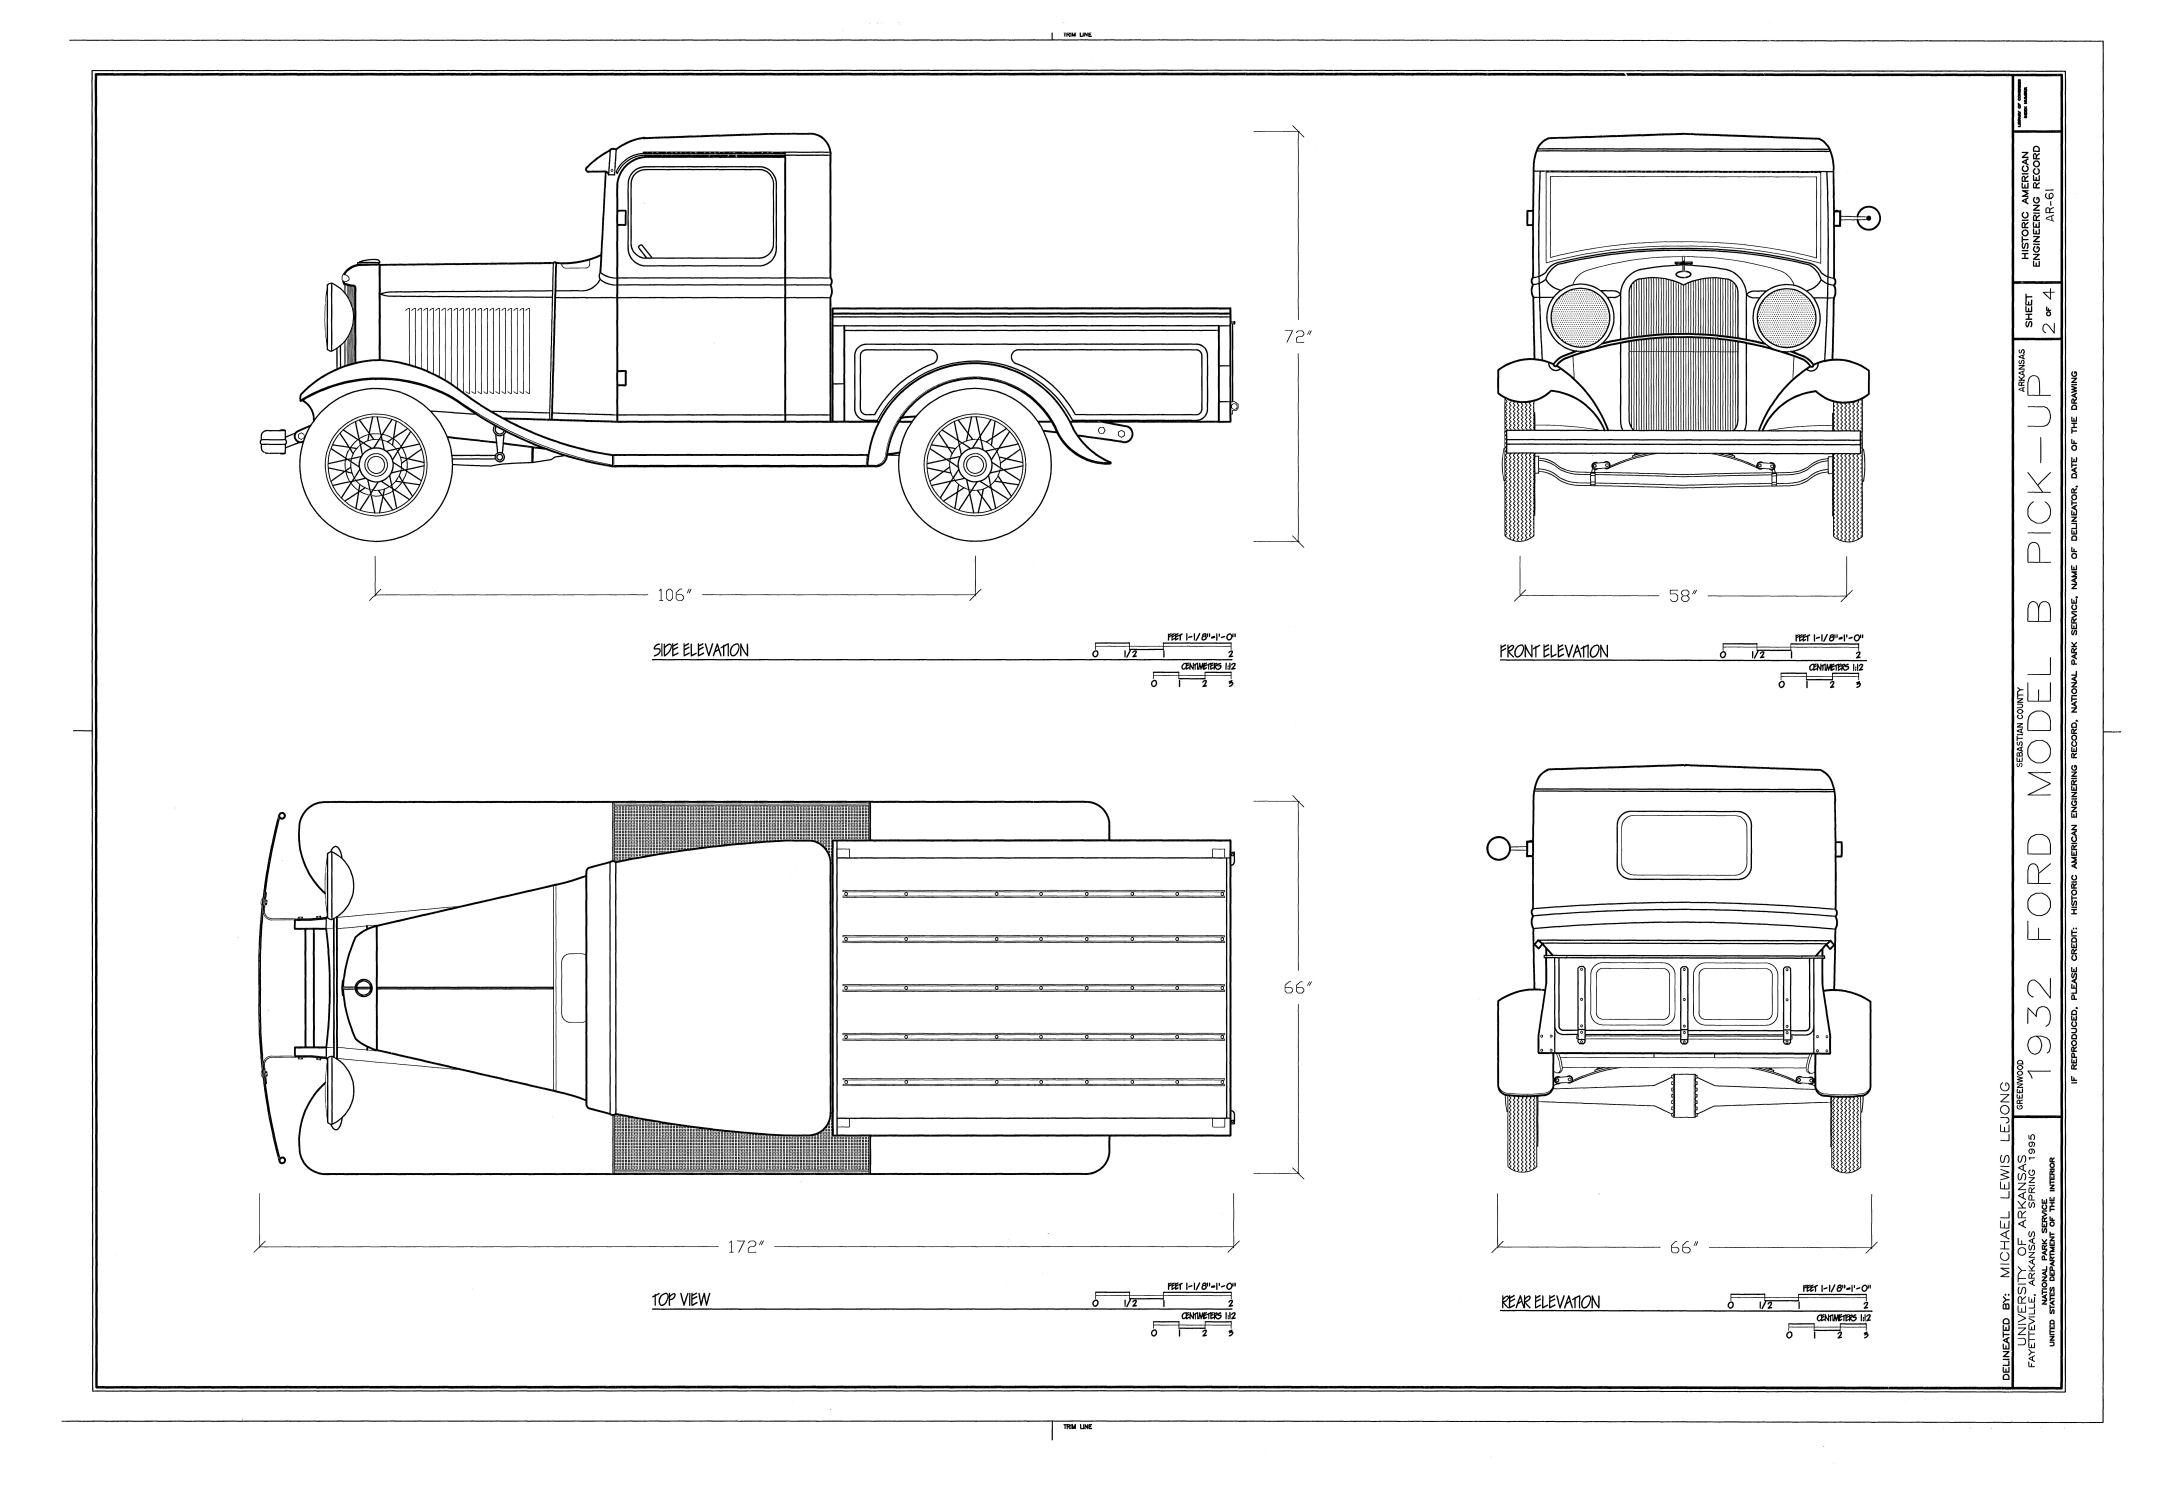 Ford Model B Pick Up Blueprint